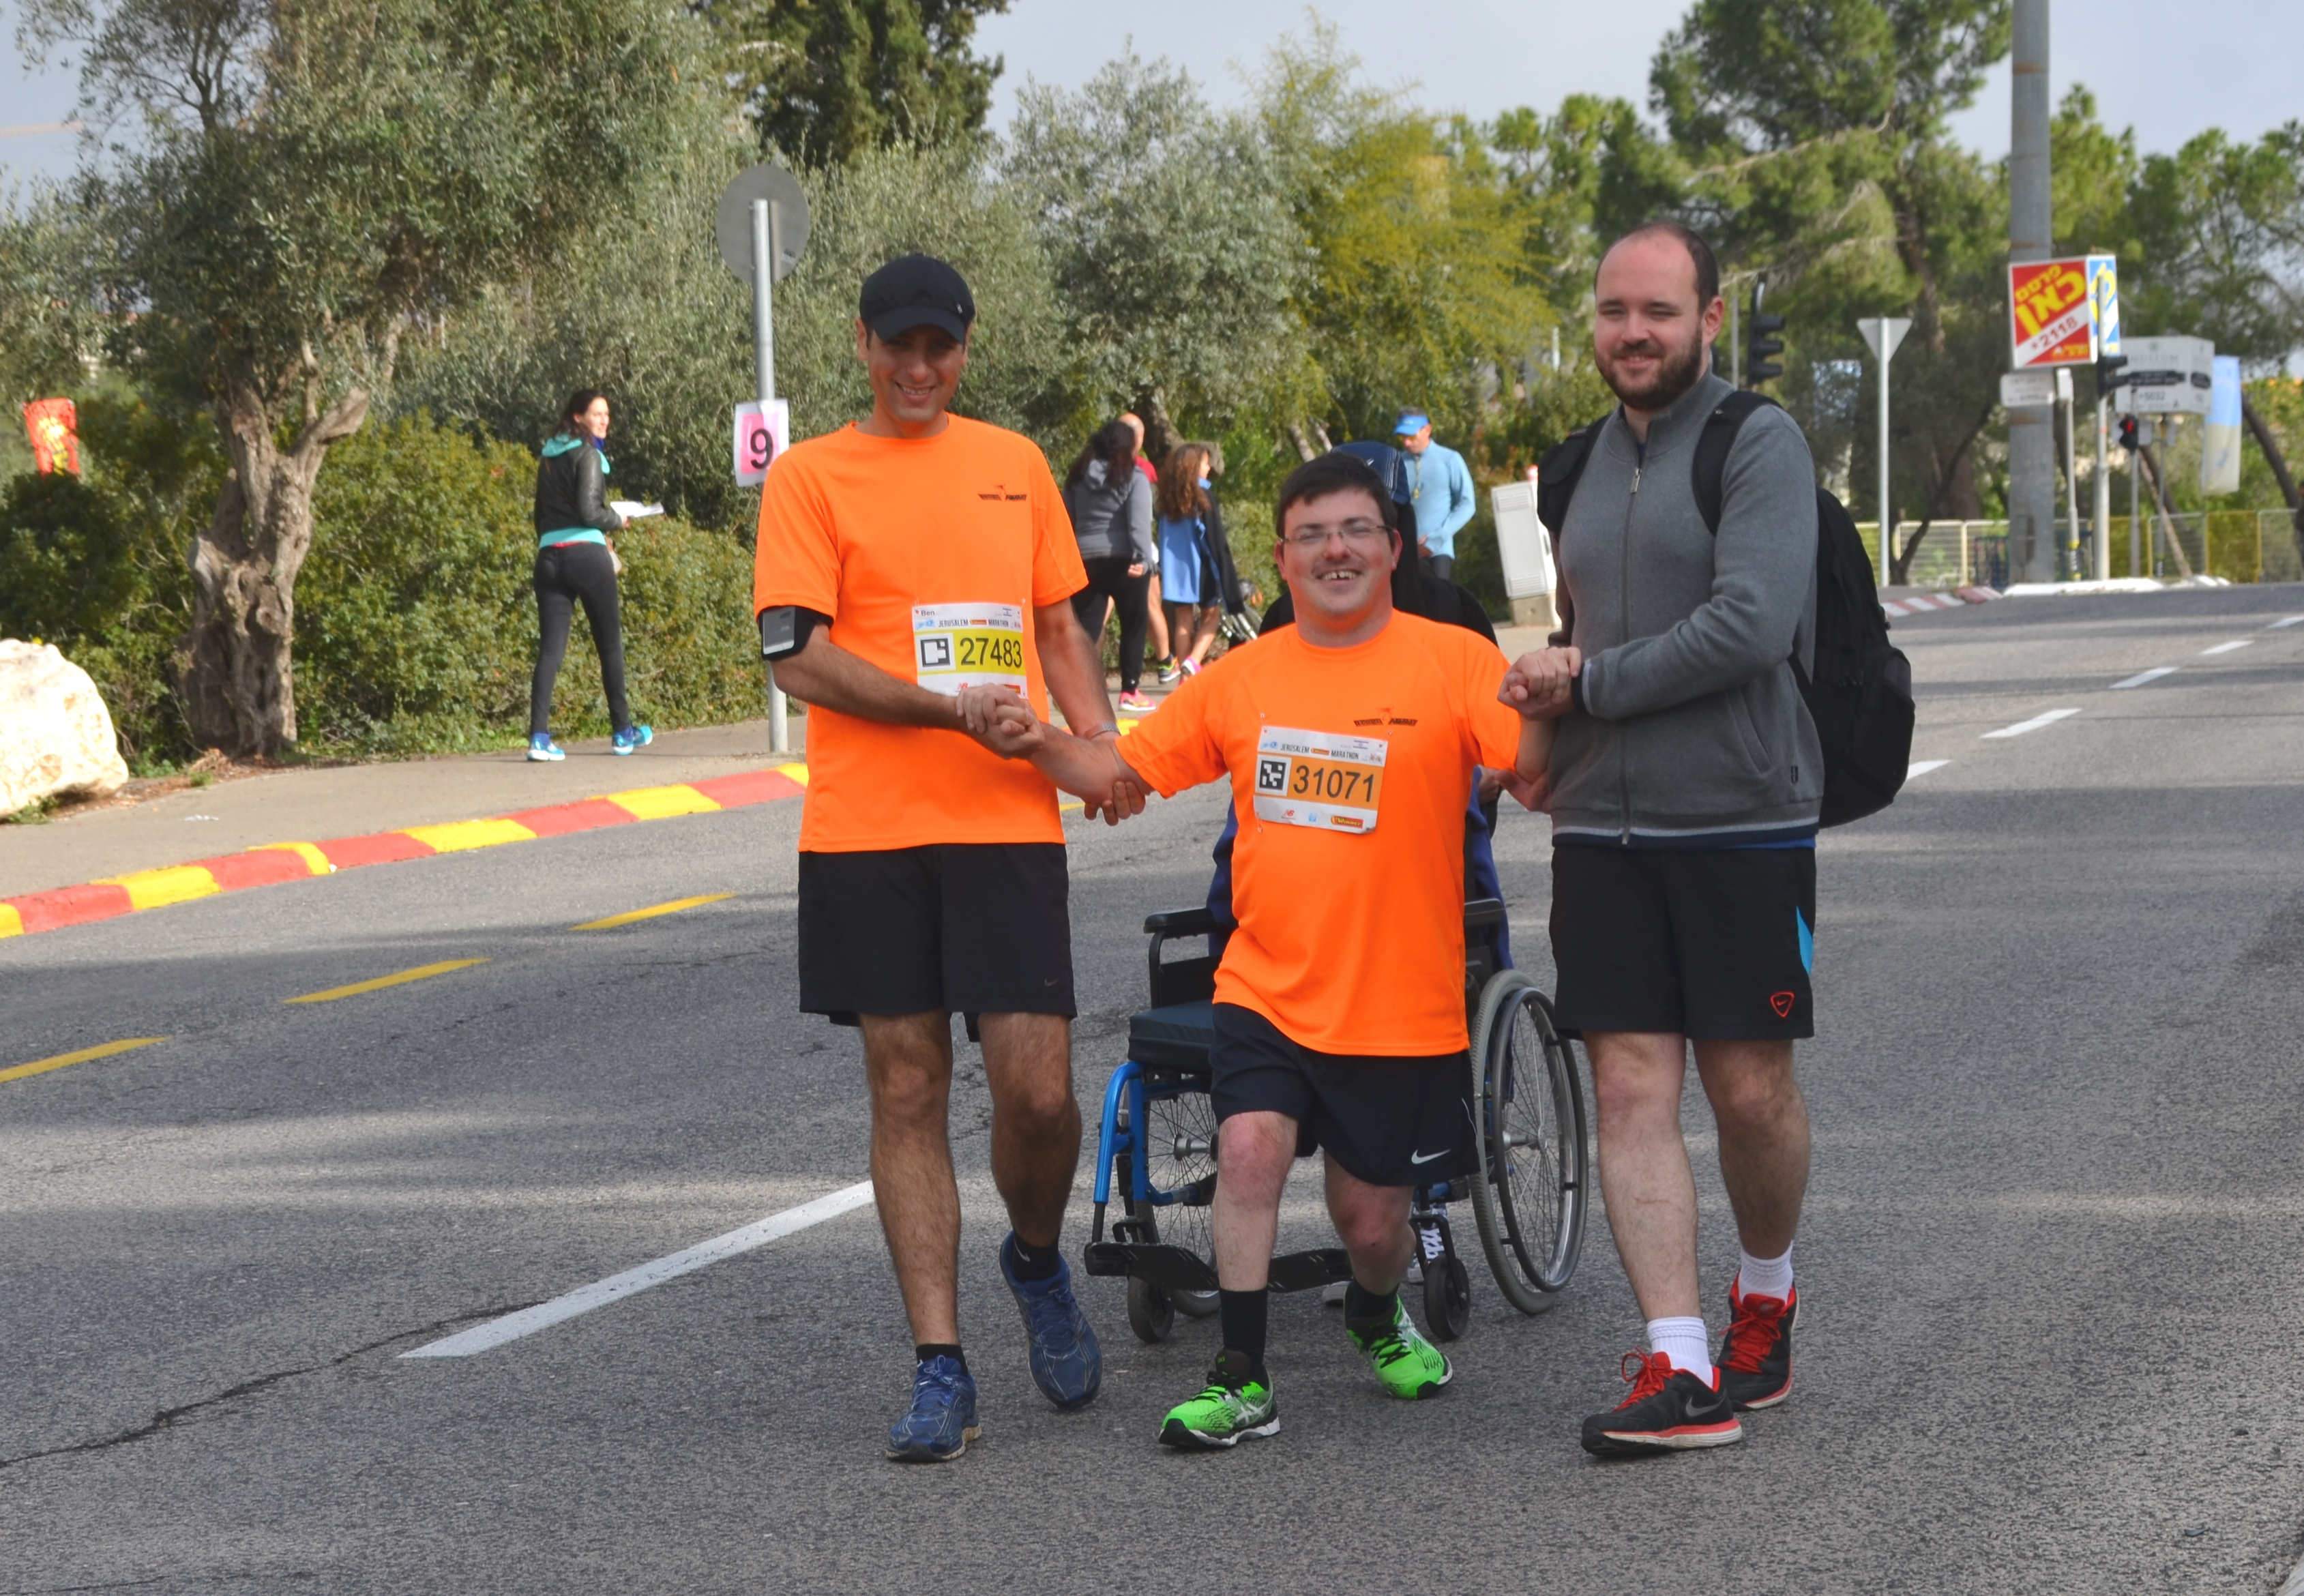 Helping disabled from wheelchair in marathon